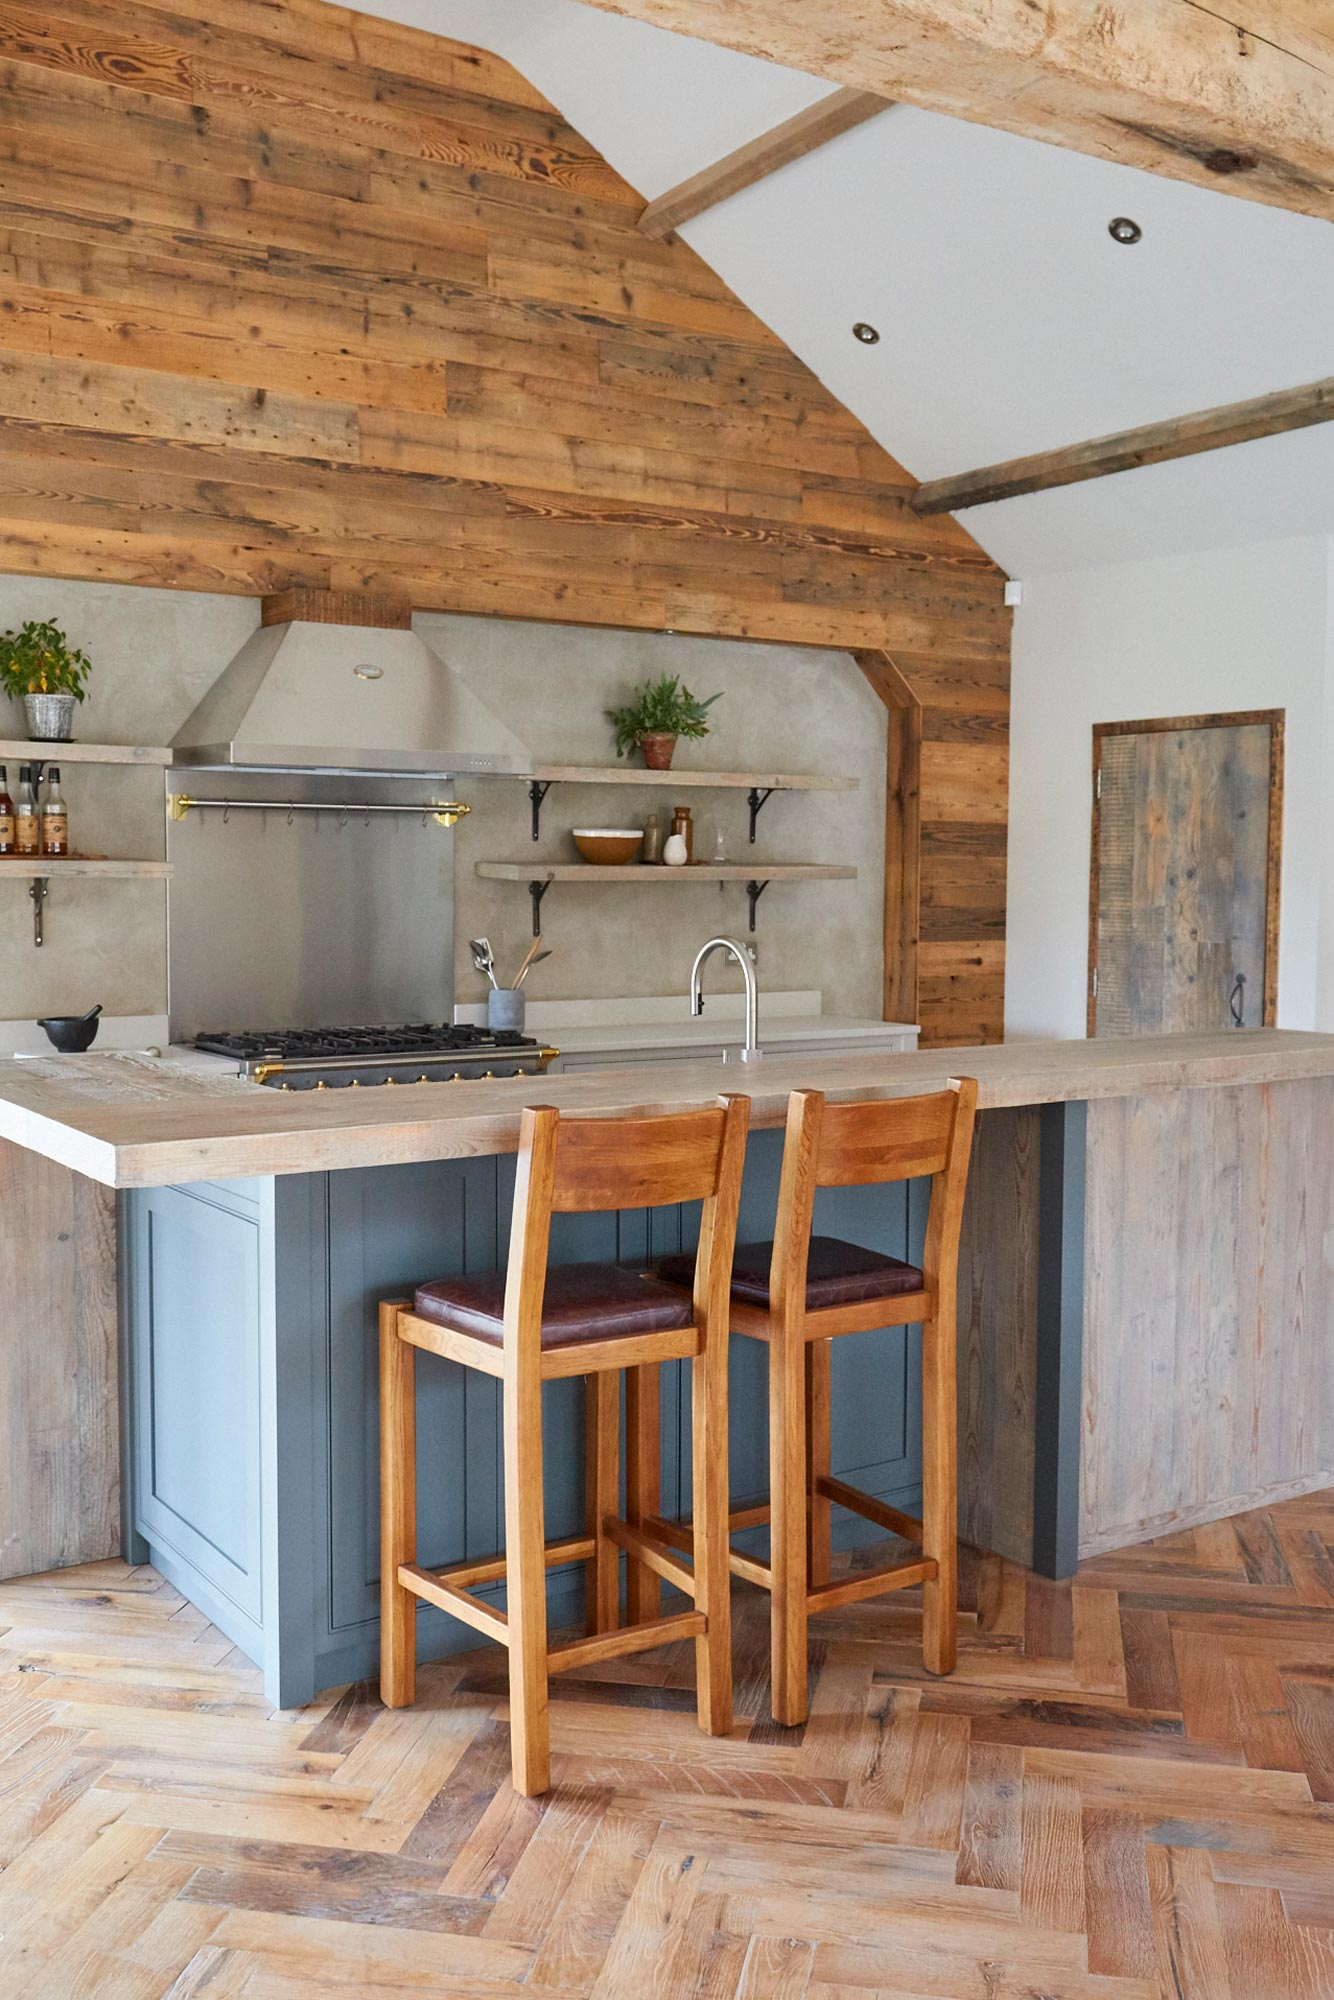 Two oak stools sit under reclaimed pine breakfast bar with painted kitchen cabinets